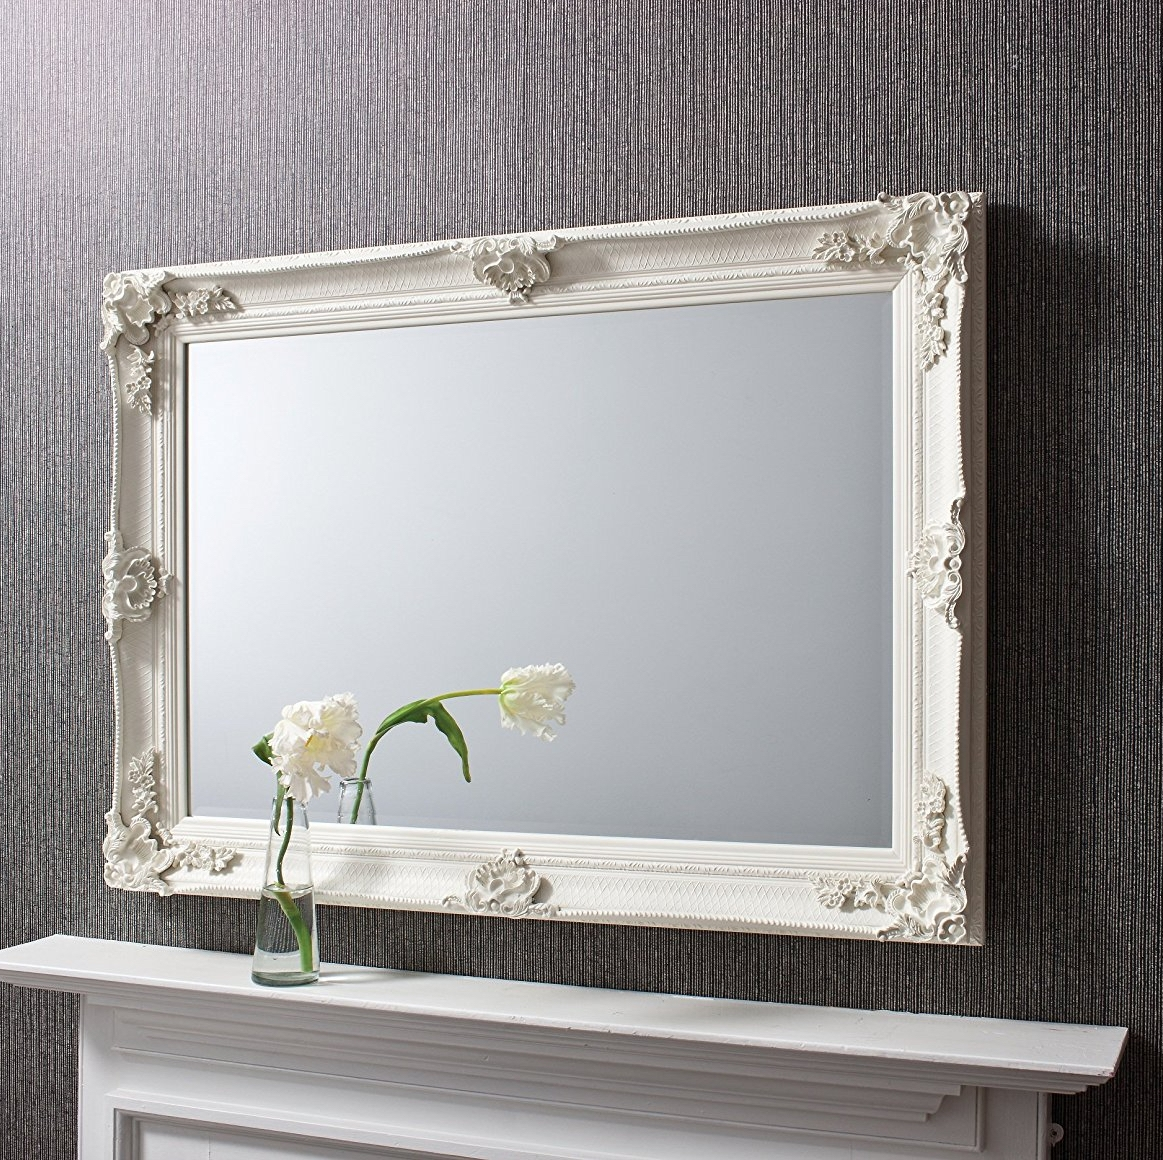 Shab Chic Mirrors Buy Online Exclusive Mirrors Inside Shabby Chic Cream Mirror (Image 8 of 15)